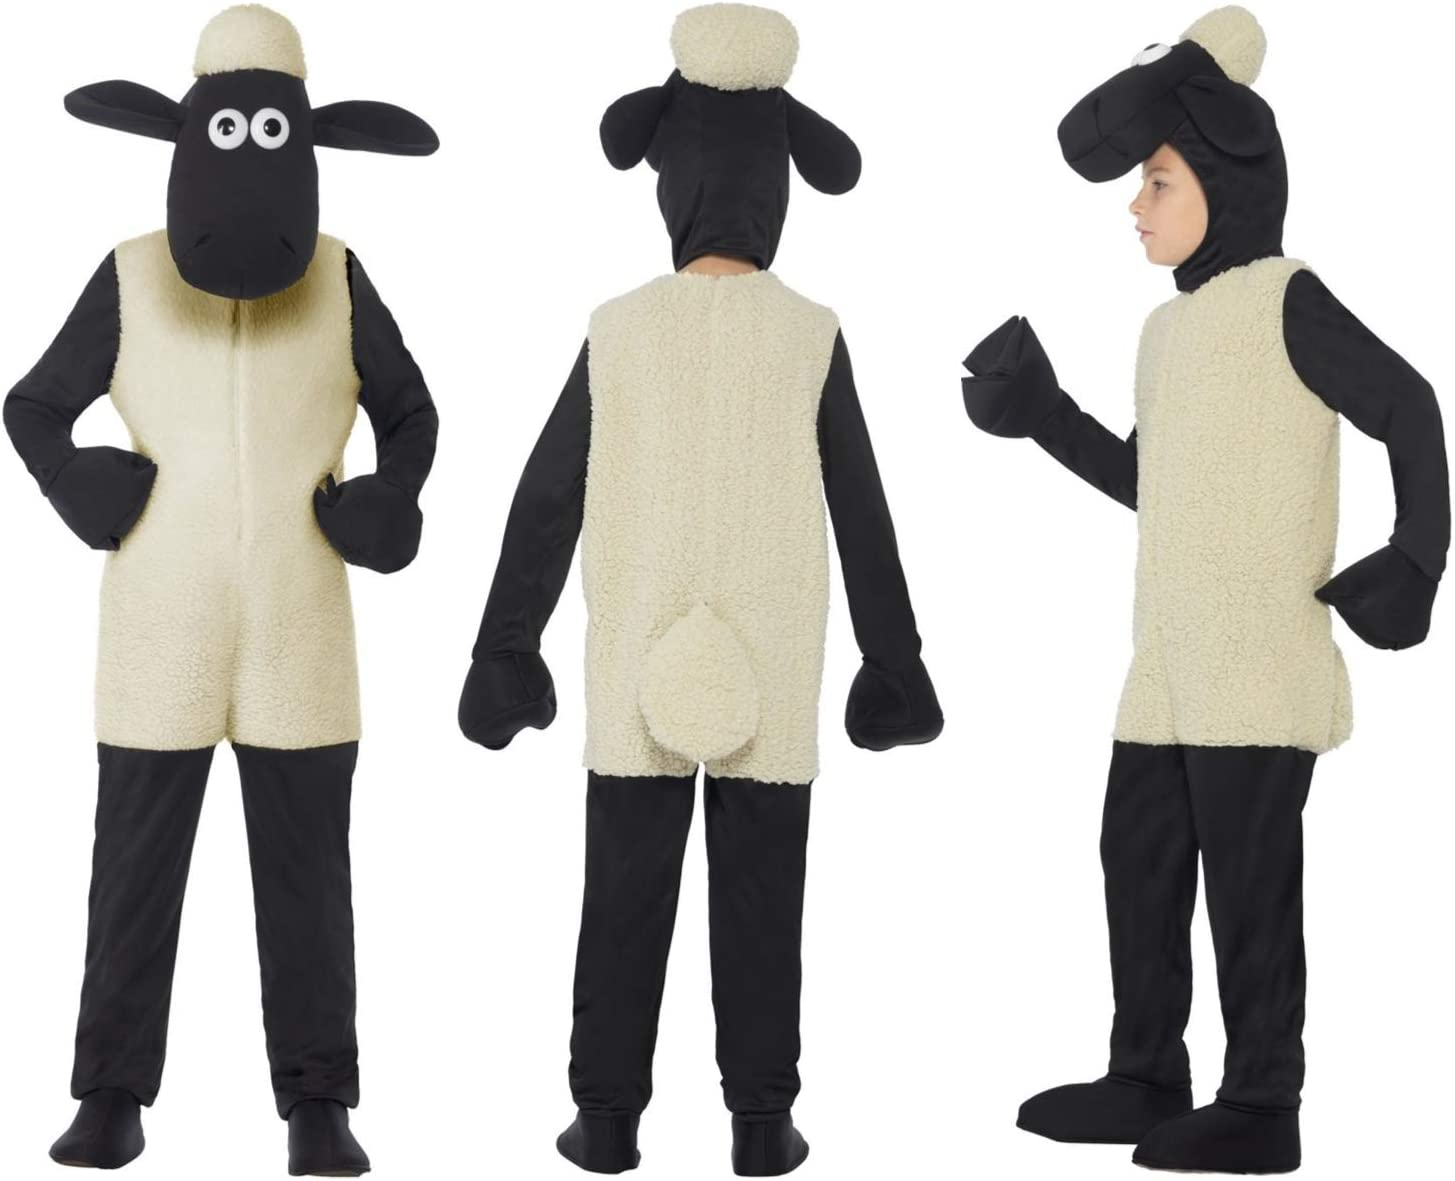 Fancy Dress World - Disfraz Infantil de Oveja Shaun The Sheep ...